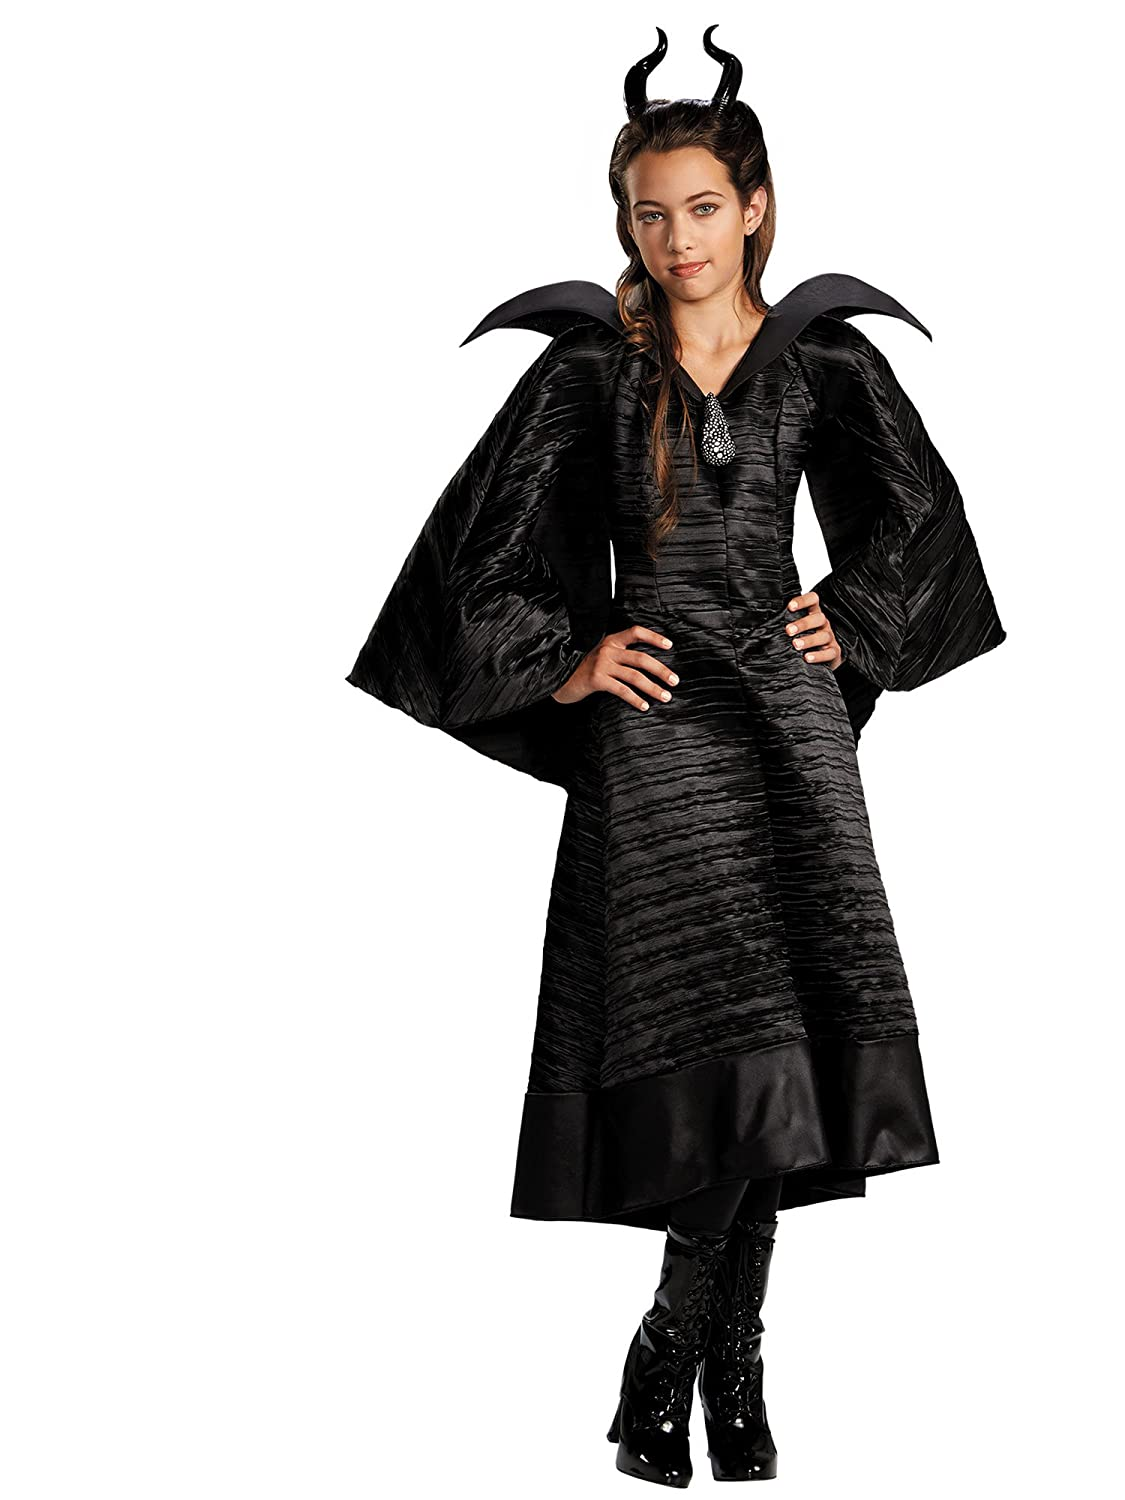 Black Christening Gown Kids maleficent costume child